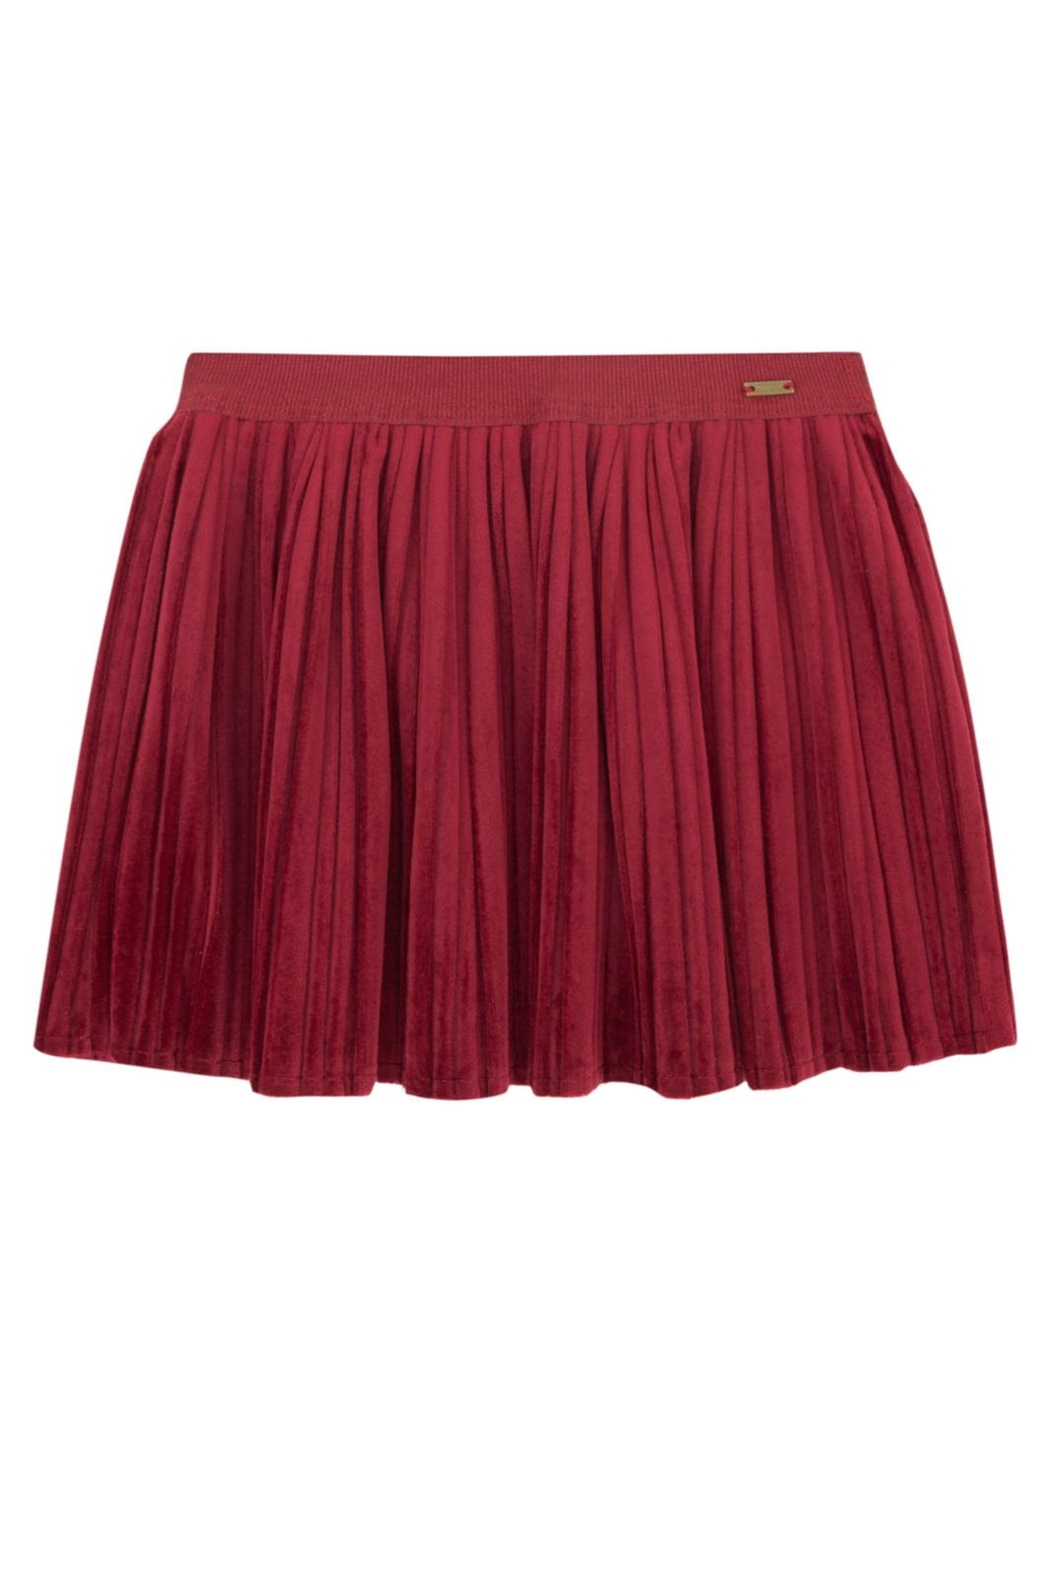 Mayoral Red Velvet Skirt - Main Image